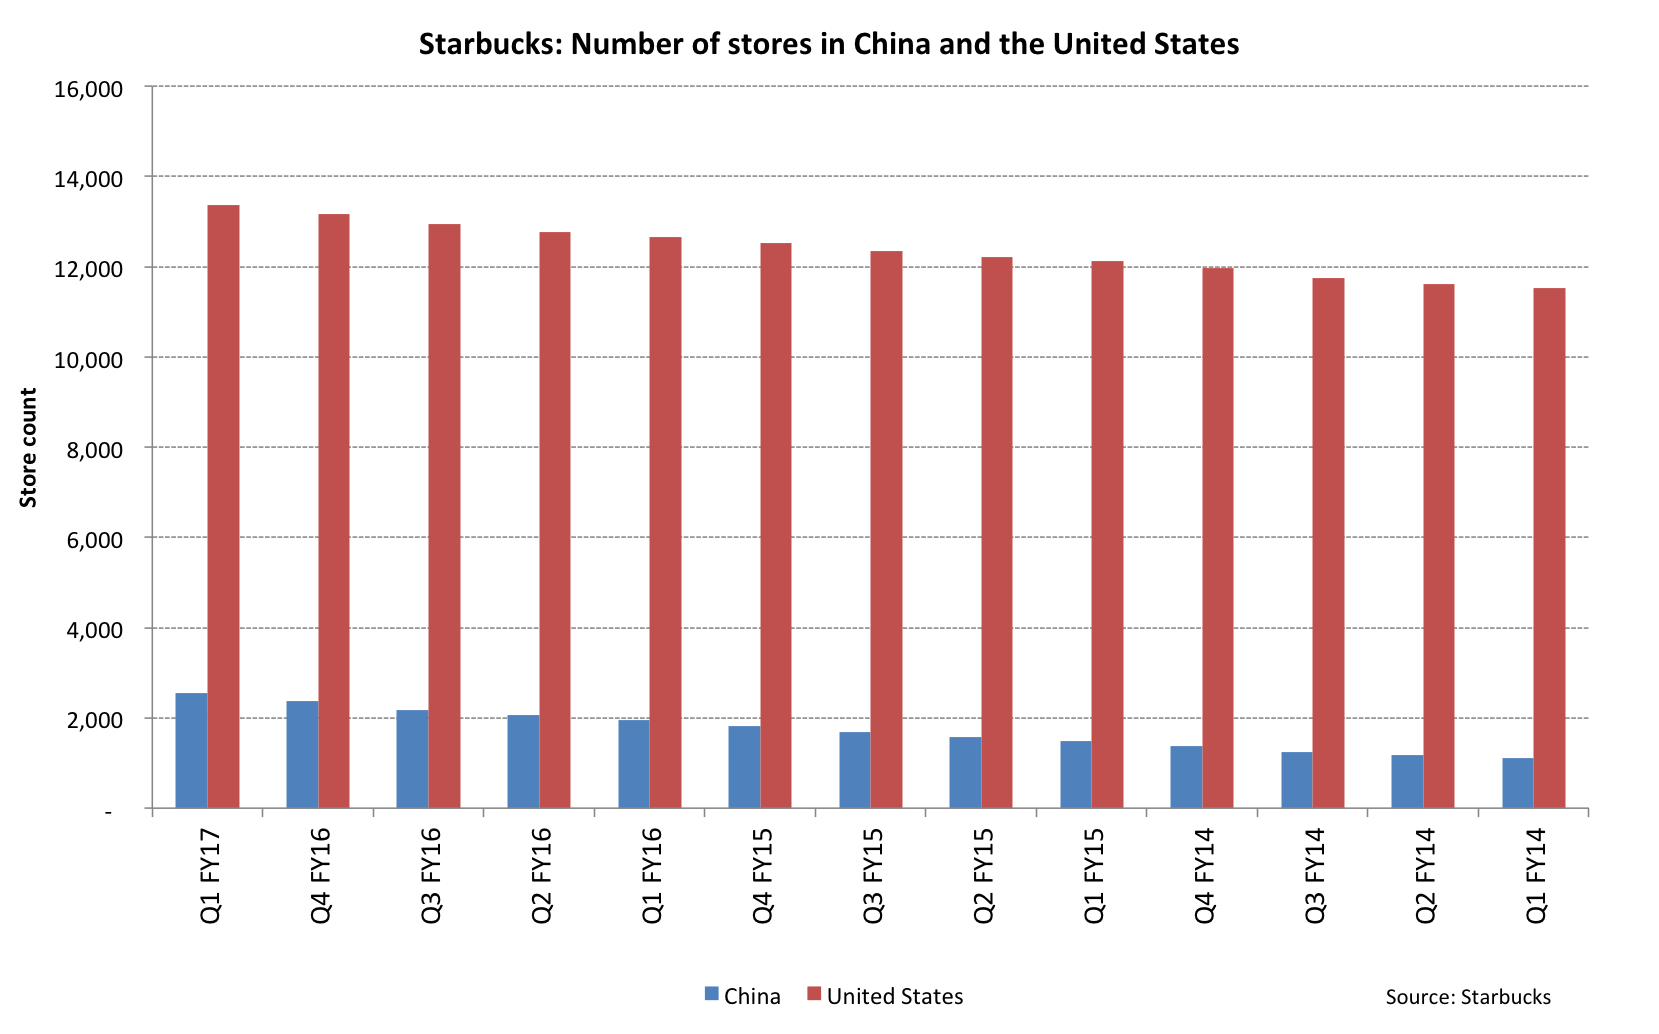 Union Bankshares Corp Invests $204000 in Starbucks Co. (SBUX)